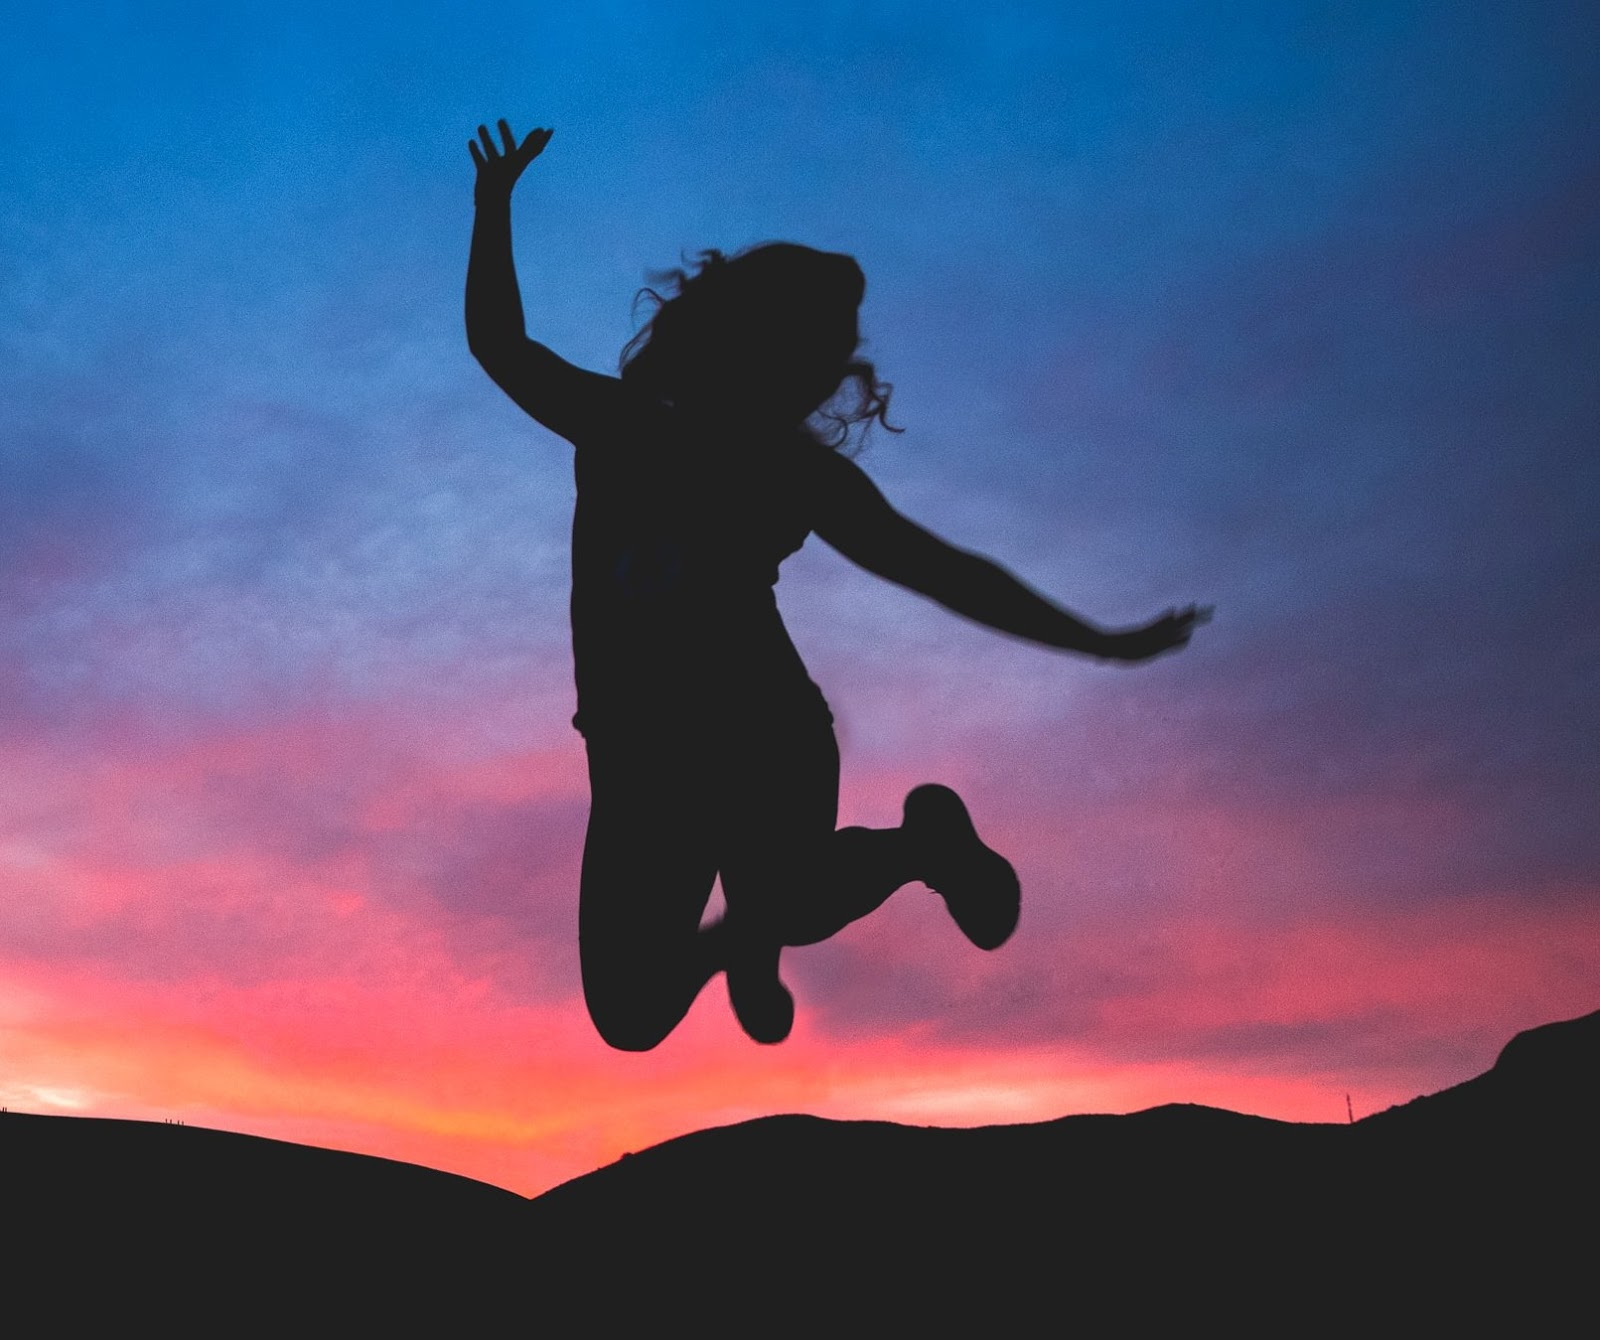 Photo of a silhouette of a person jumping in the air, arms outstretched, legs bent up behind them, against the backdrop of hills in silhouette and a orange, pink, purple and blue sunset